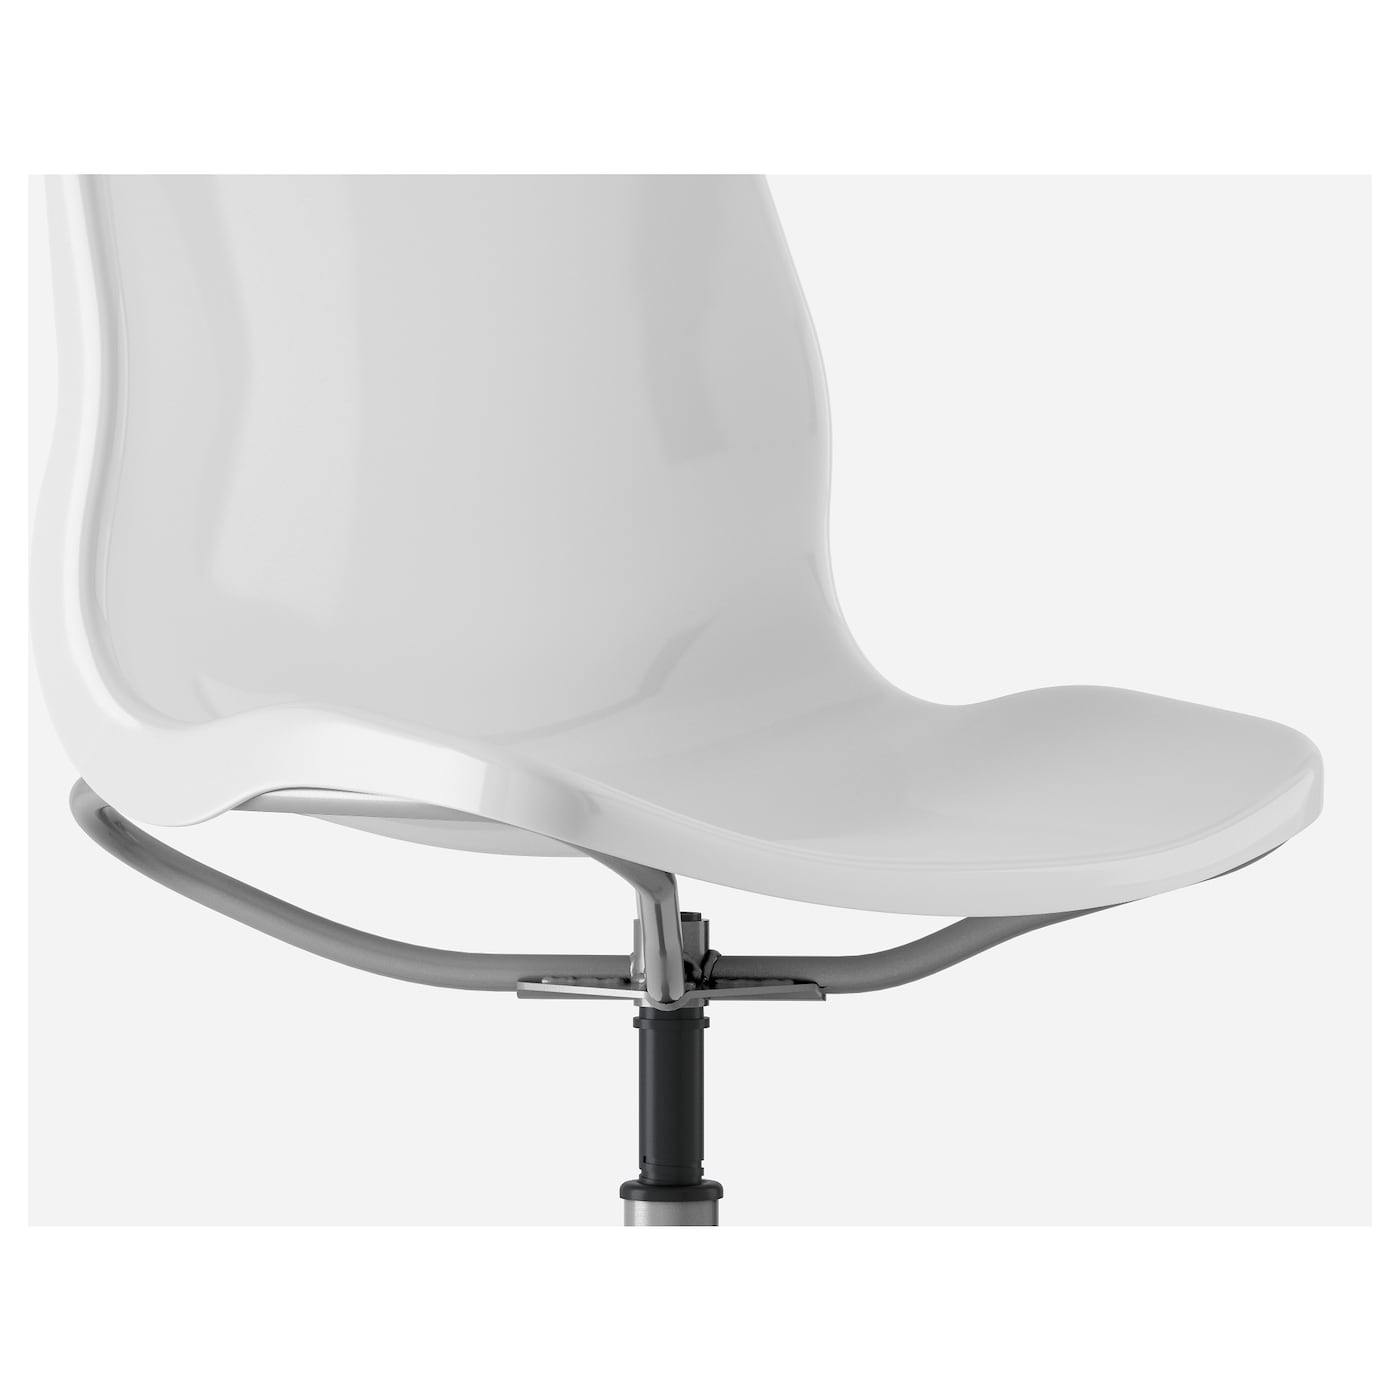 IKEA SNILLE swivel chair You sit comfortably since the chair is adjustable in height.